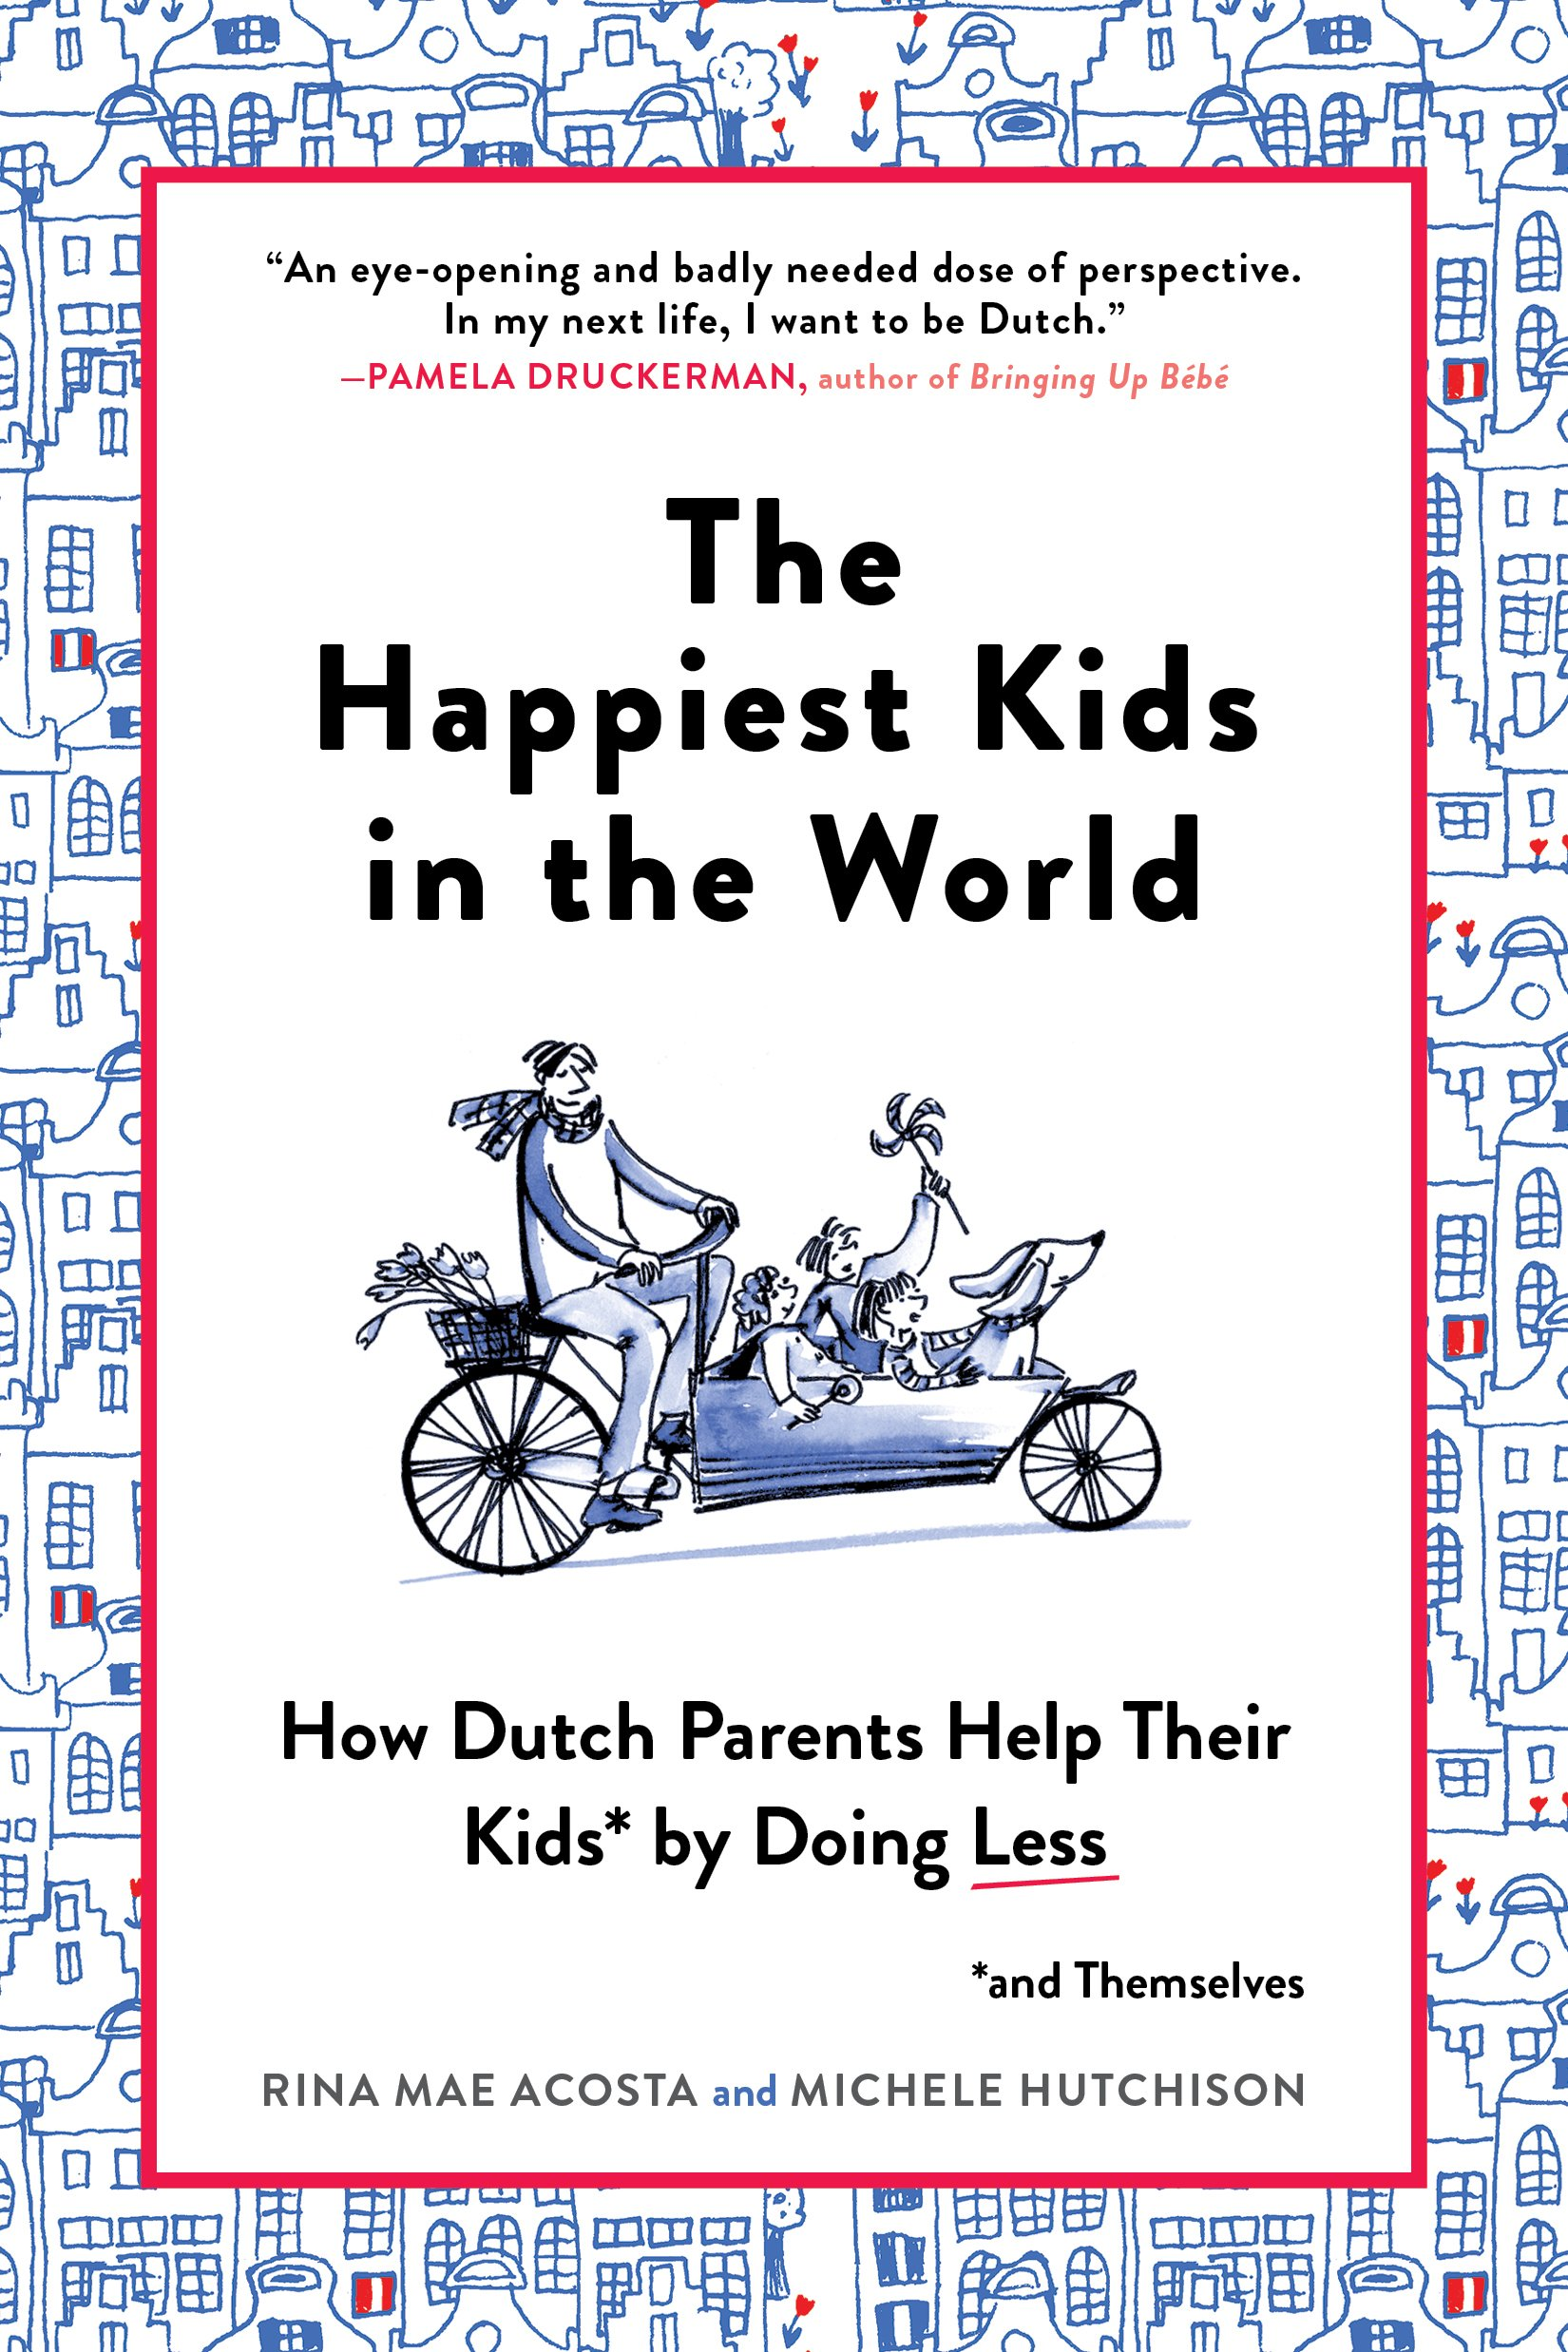 the-happiest-kids-in-the-world-how-dutch-parents-help-their-kids-and-themselves-by-doing-less